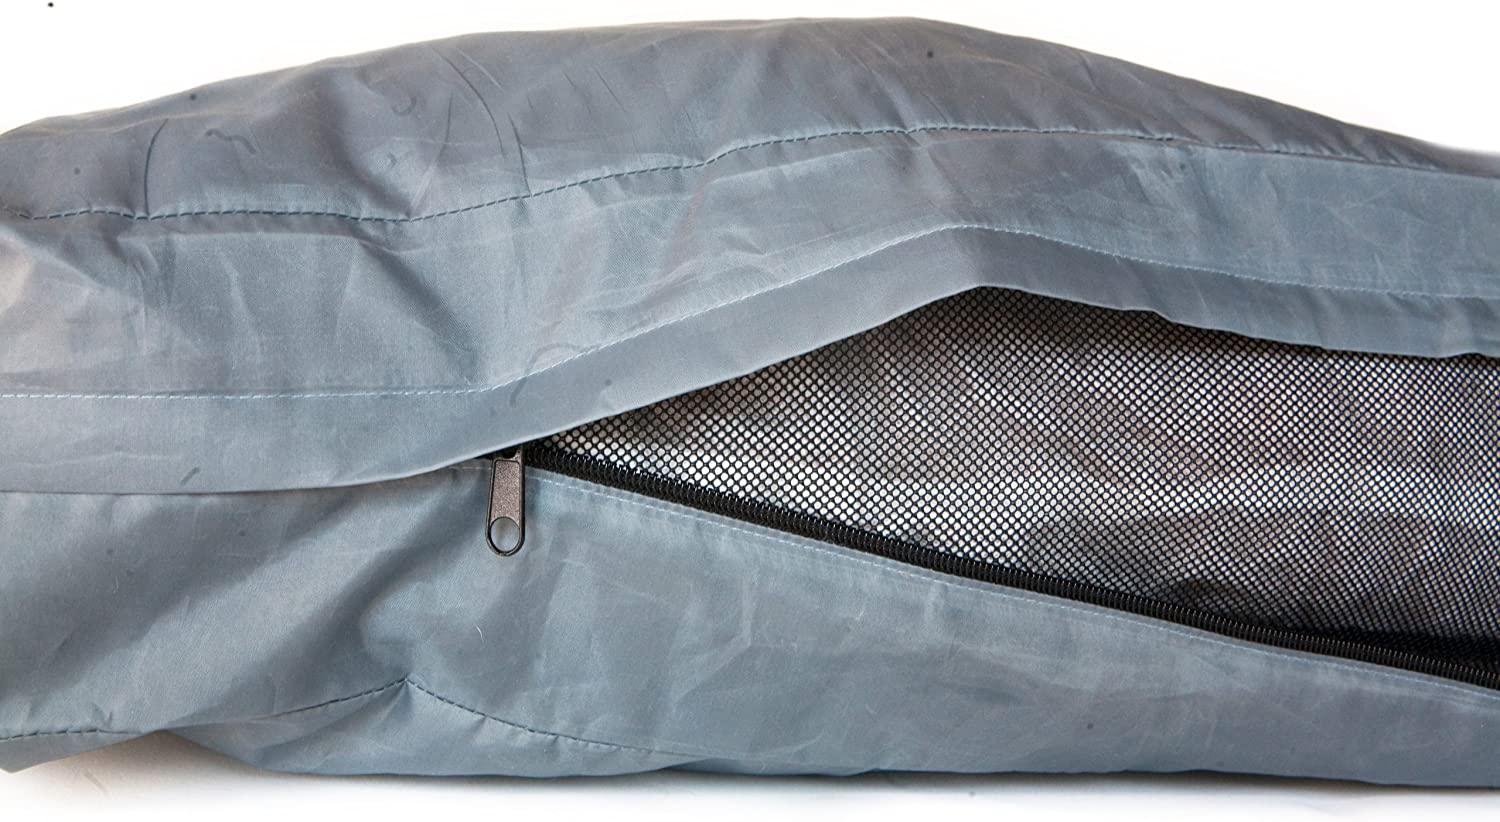 Large Dog Bed Water Resistant - Dog Bed Cover - Water Resistant Dog Bed Liner - Water Resistant Liner for Dog Bed - Nylon Dog Bed - Dog Bed Water Resistant Liner - Dog Bed Large Water Resistant - molly mutt Dog Bed Covers: Pet Supplies